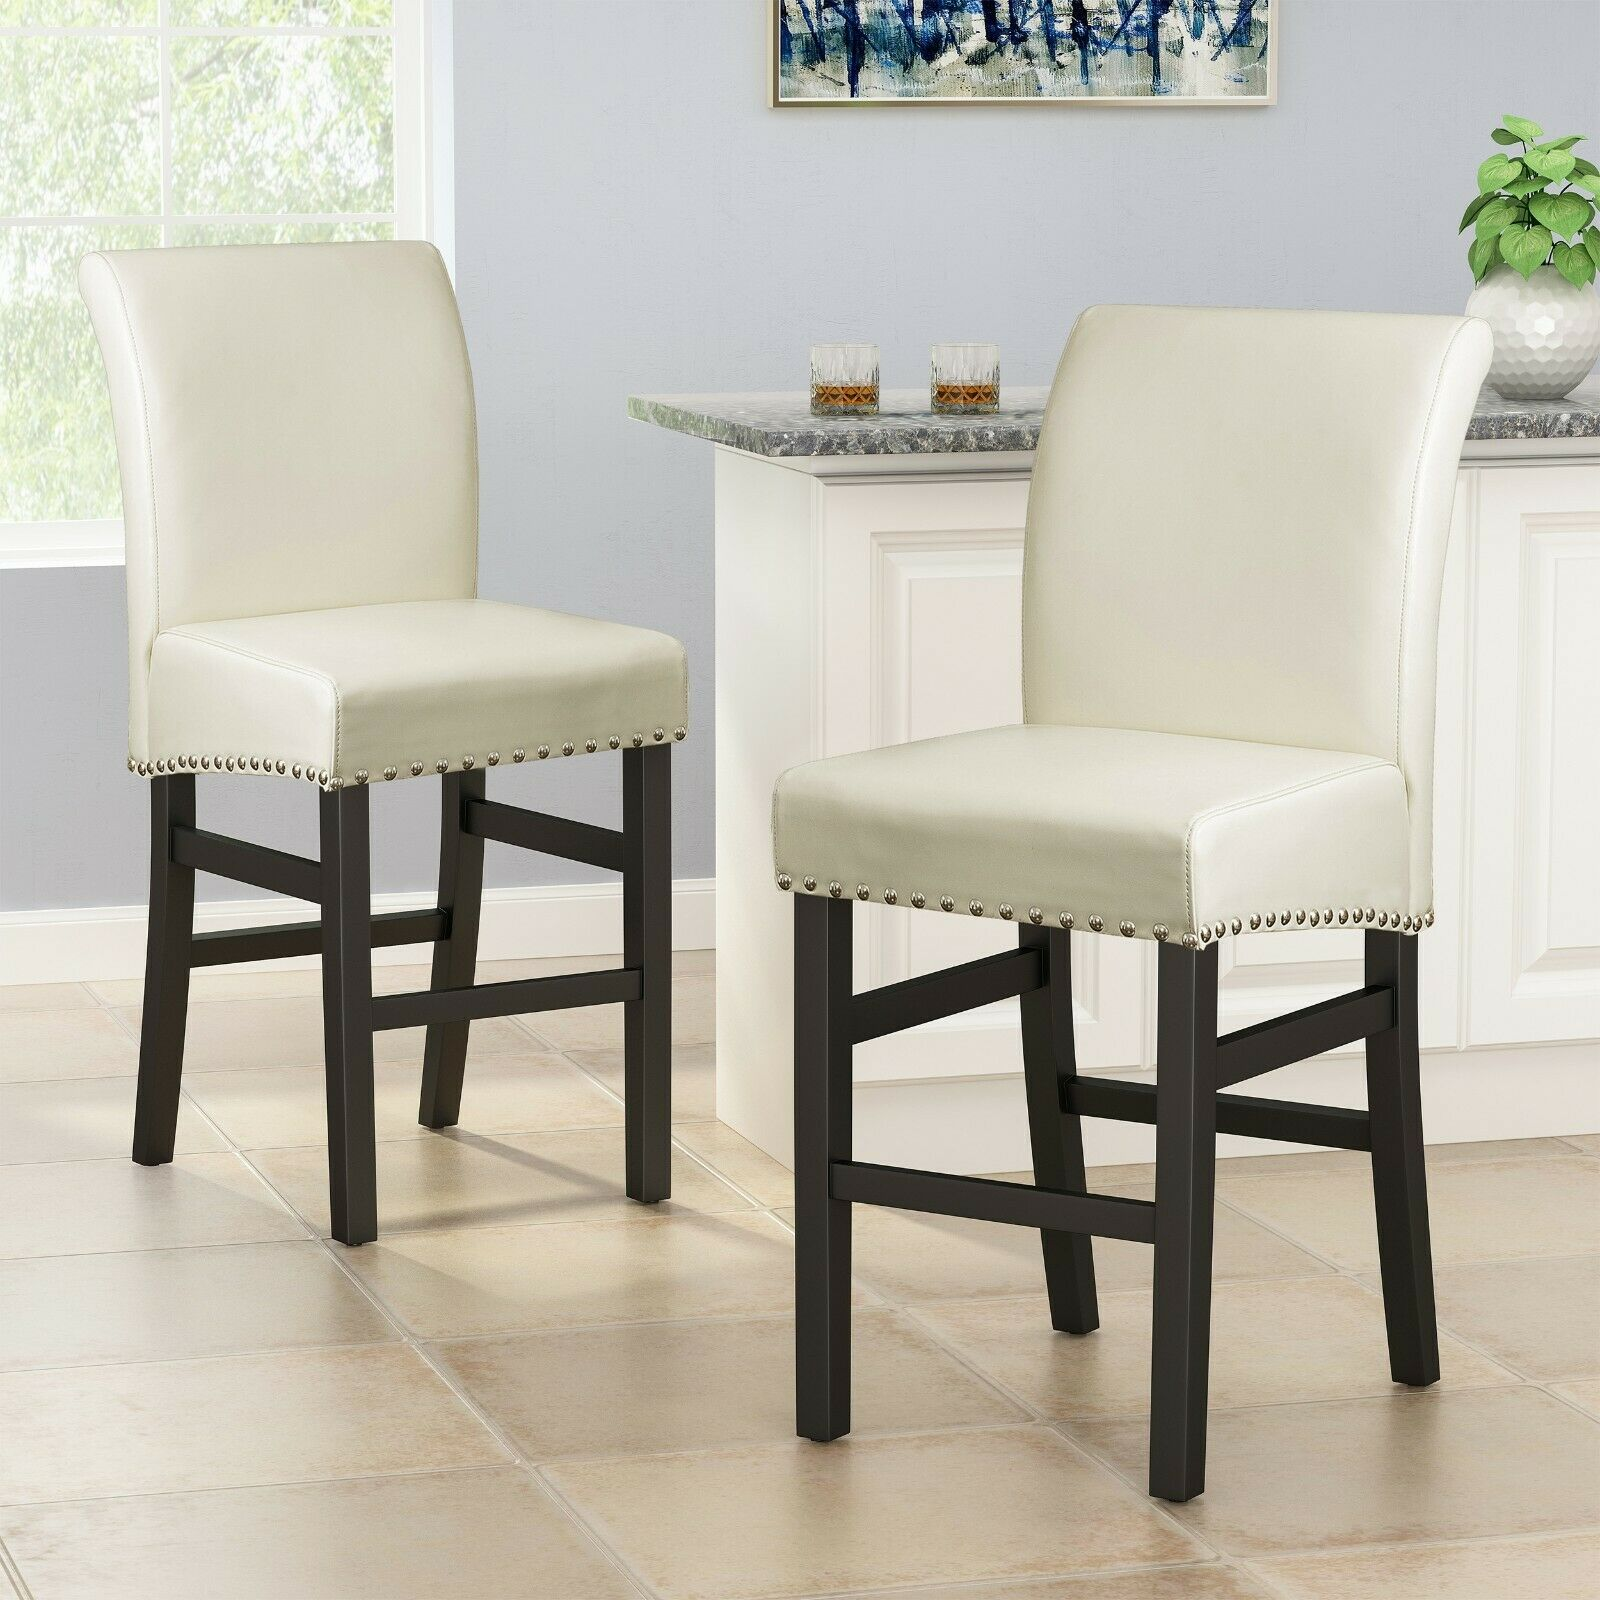 Clifton 25-Inch Ivory Leather Counter Stool (Set of 2) Benches, Stools & Bar Stools